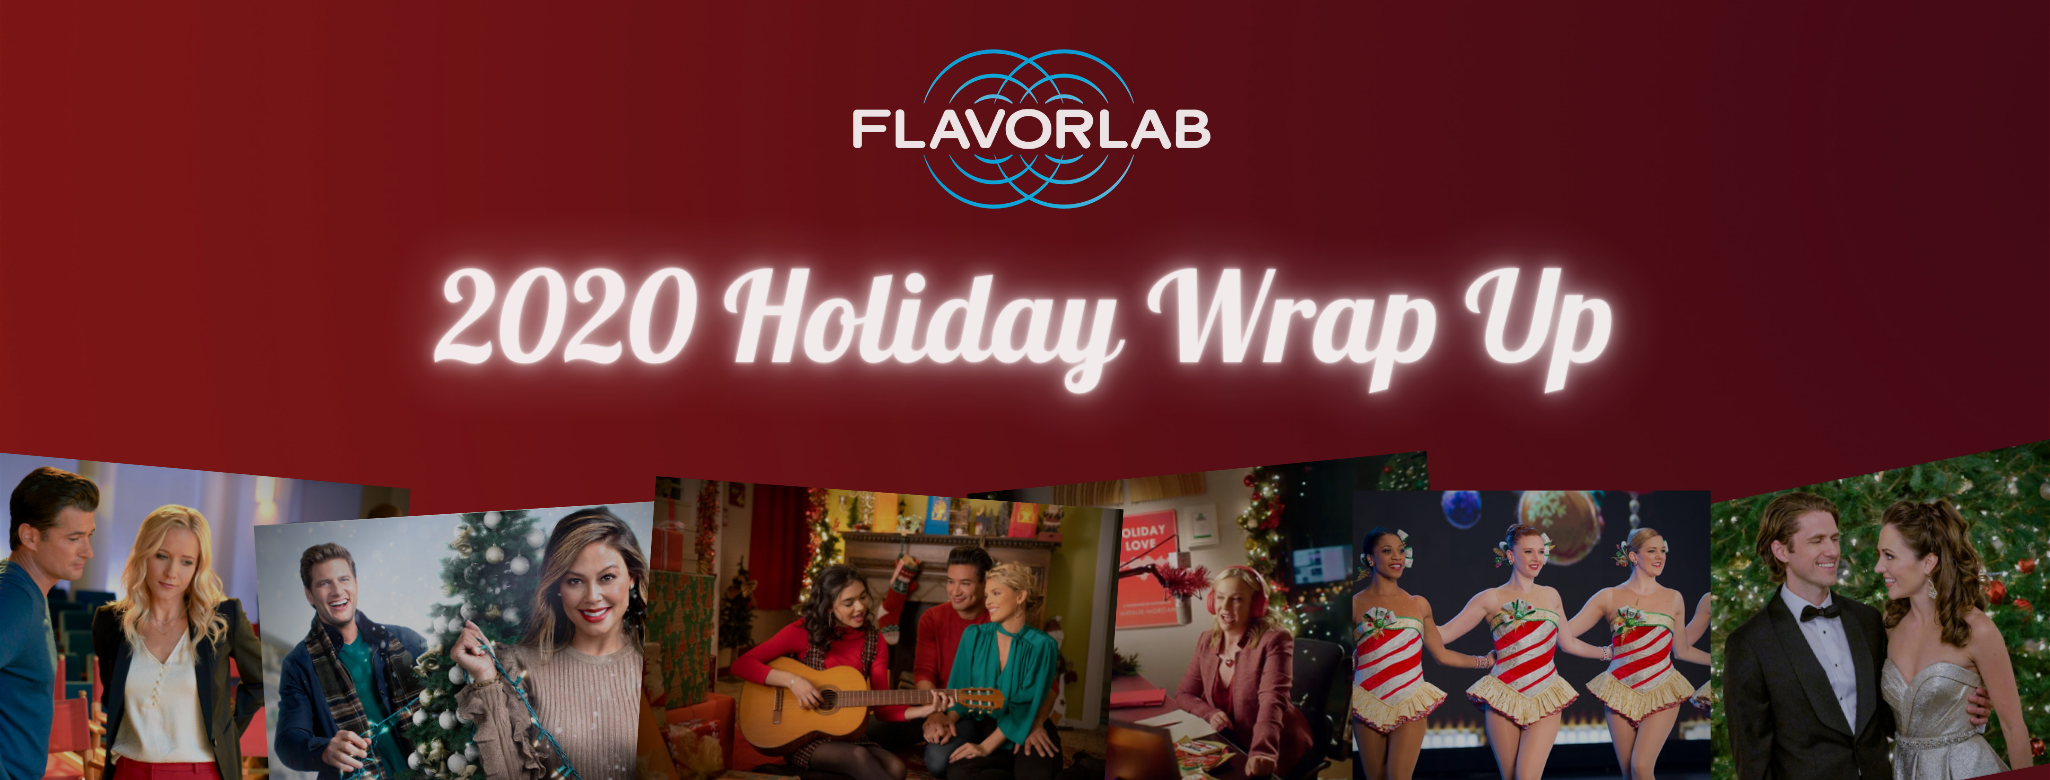 Here's our 2020 Holiday Wrap Up before we log off for some Yuletide cheer! Flavorlab Sound provided sound design and mix for 5 television films this year!